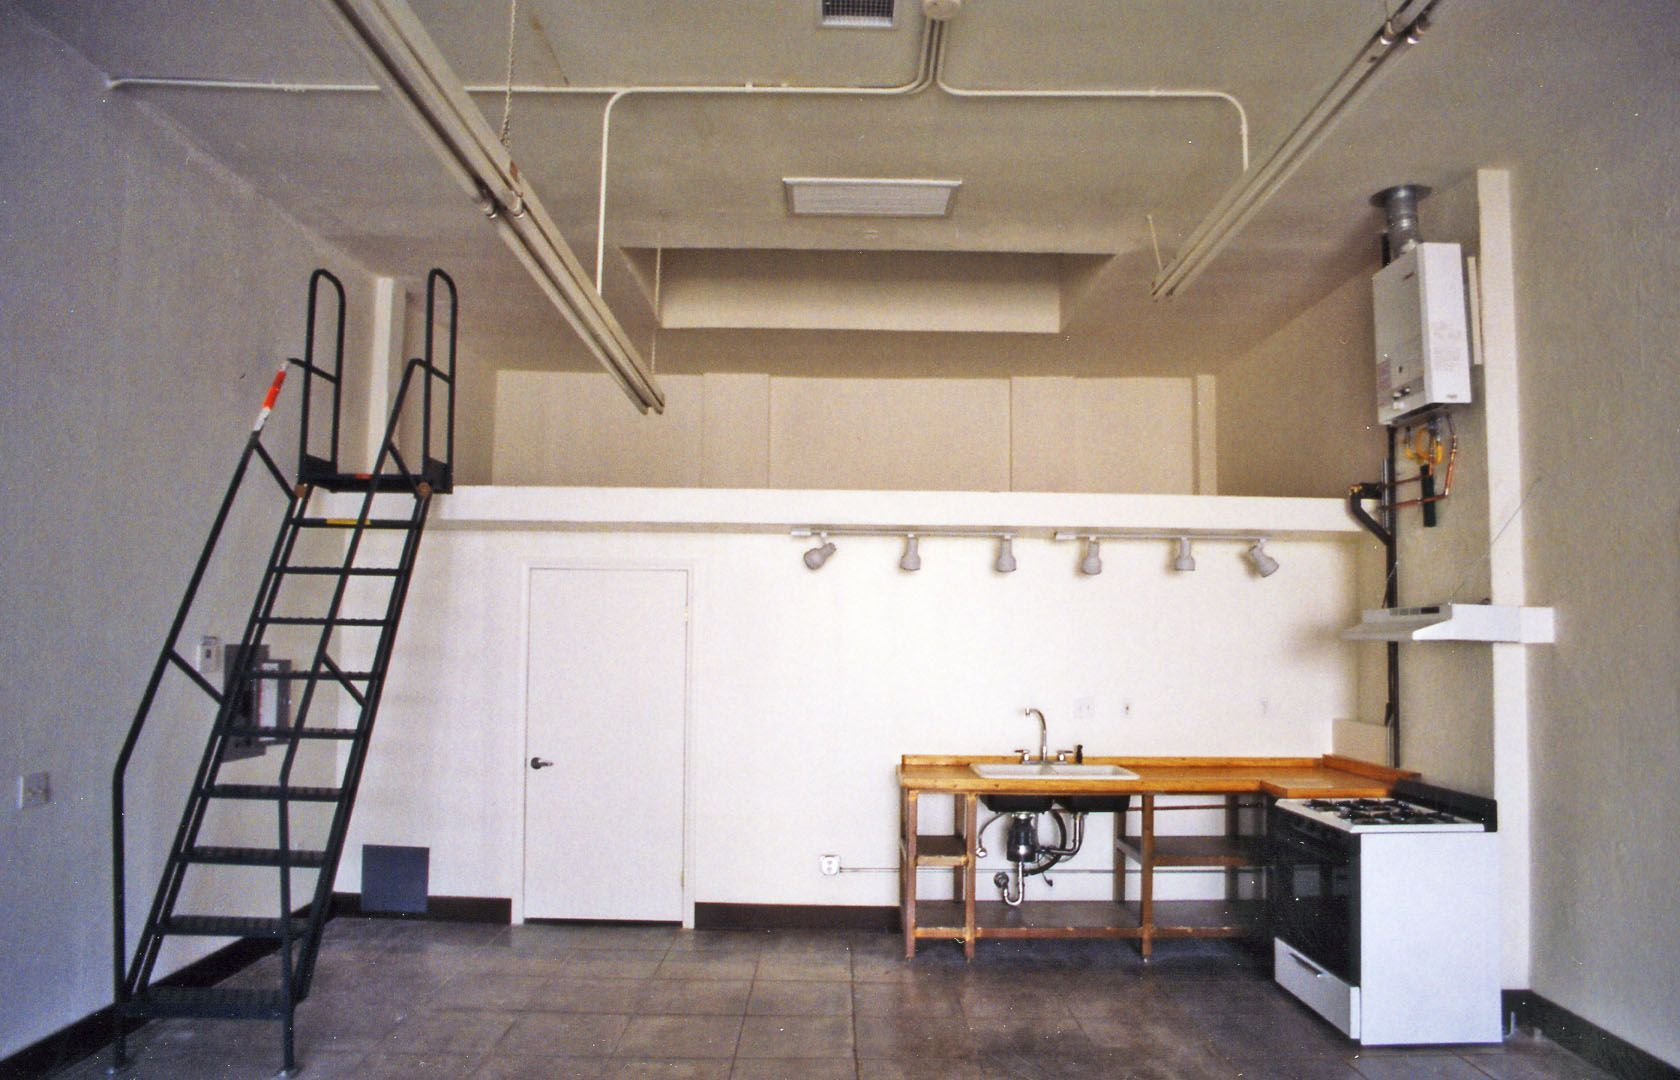 Ontario Art Lofts Live Work Loft For Rent Downtown Ontario Ca